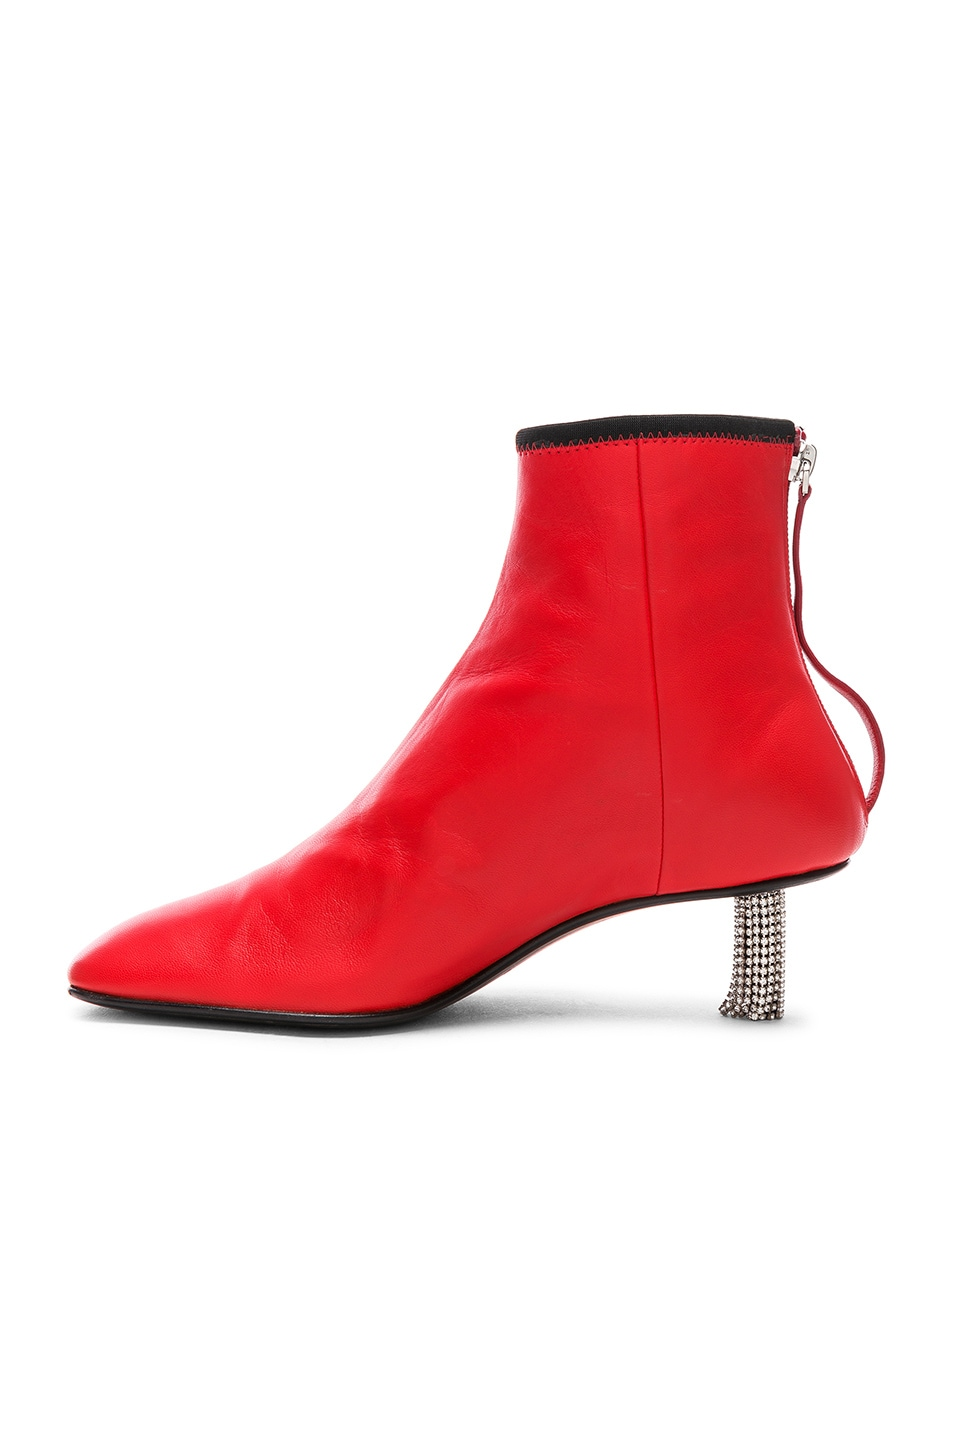 Image 5 of CALVIN KLEIN 205W39NYC Grainne Leather Crystal Heel Ankle Boots in Bright Red & Black